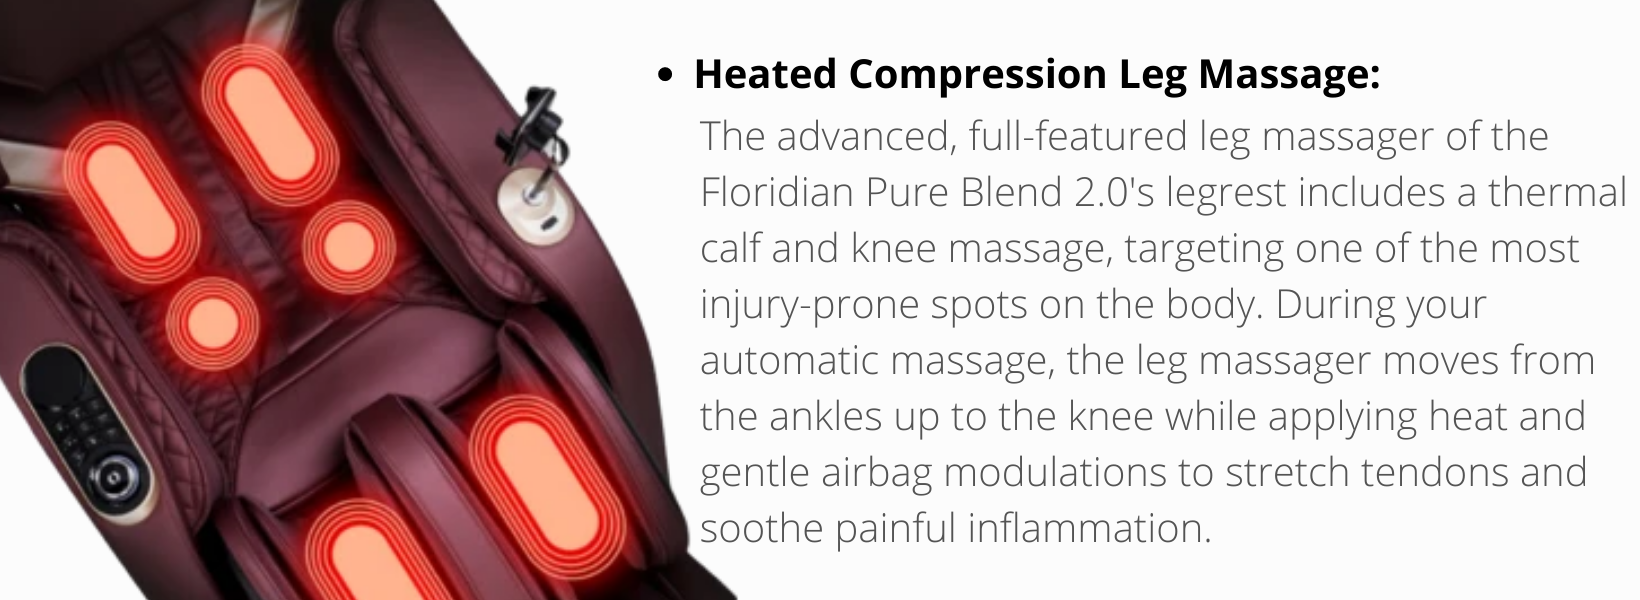 Heated Compression Leg Massage: The advanced, full-featured leg massager of the Floridian Pure Blend 2.0's legrest includes a thermal calf and knee massage, targeting one of the most injury-prone spots on the body. During your automatic massage, the leg massager moves from the ankles up to the knee while applying heat and gentle airbag modulations to stretch tendons and soothe painful inflammation.